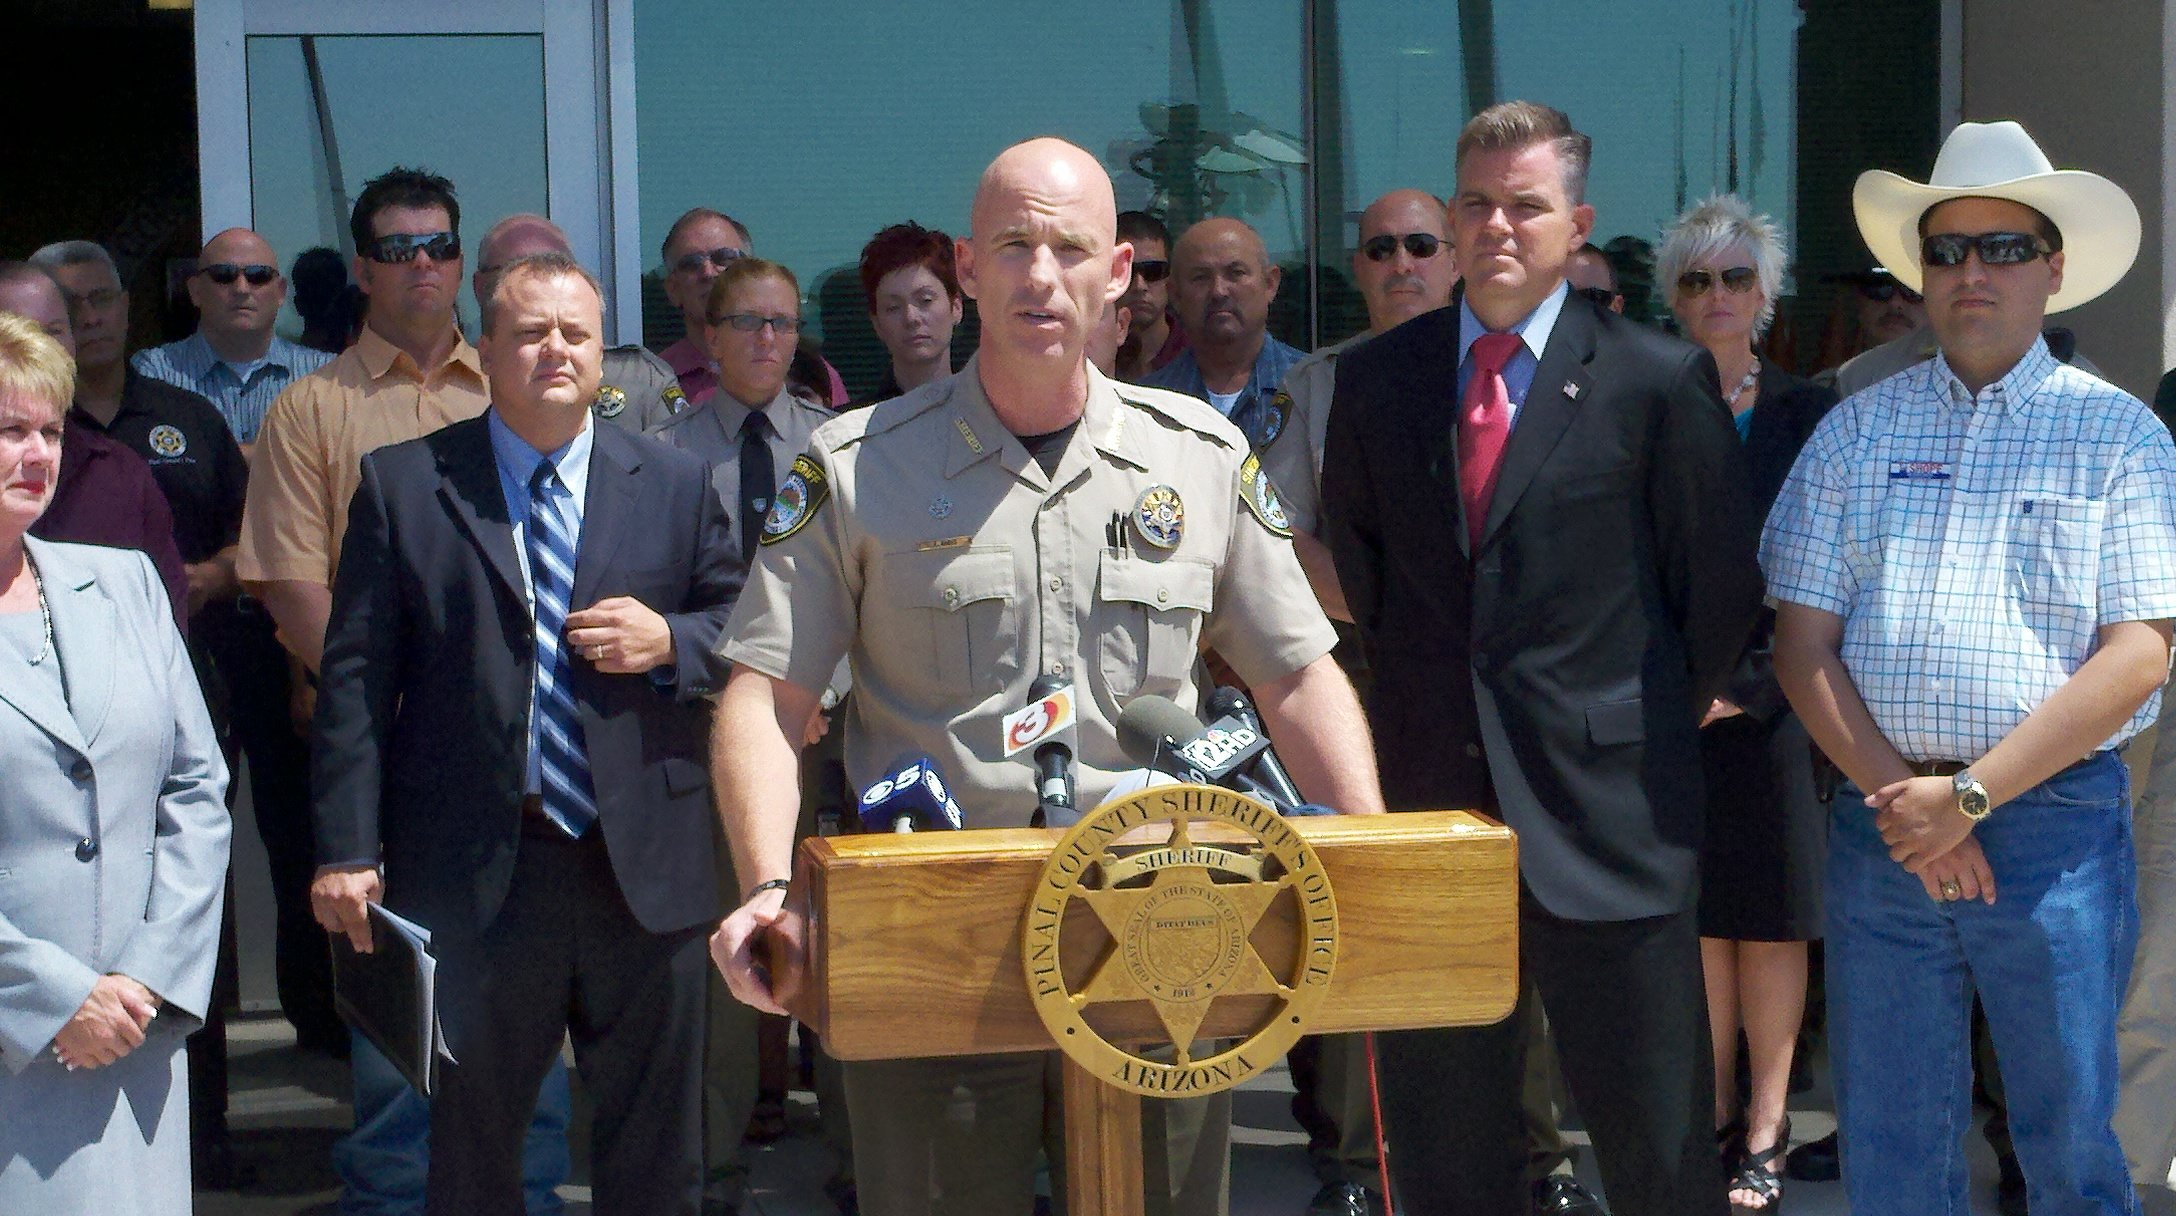 Sheriff Babeu held a news conference on Friday responding to the results of the investigation.